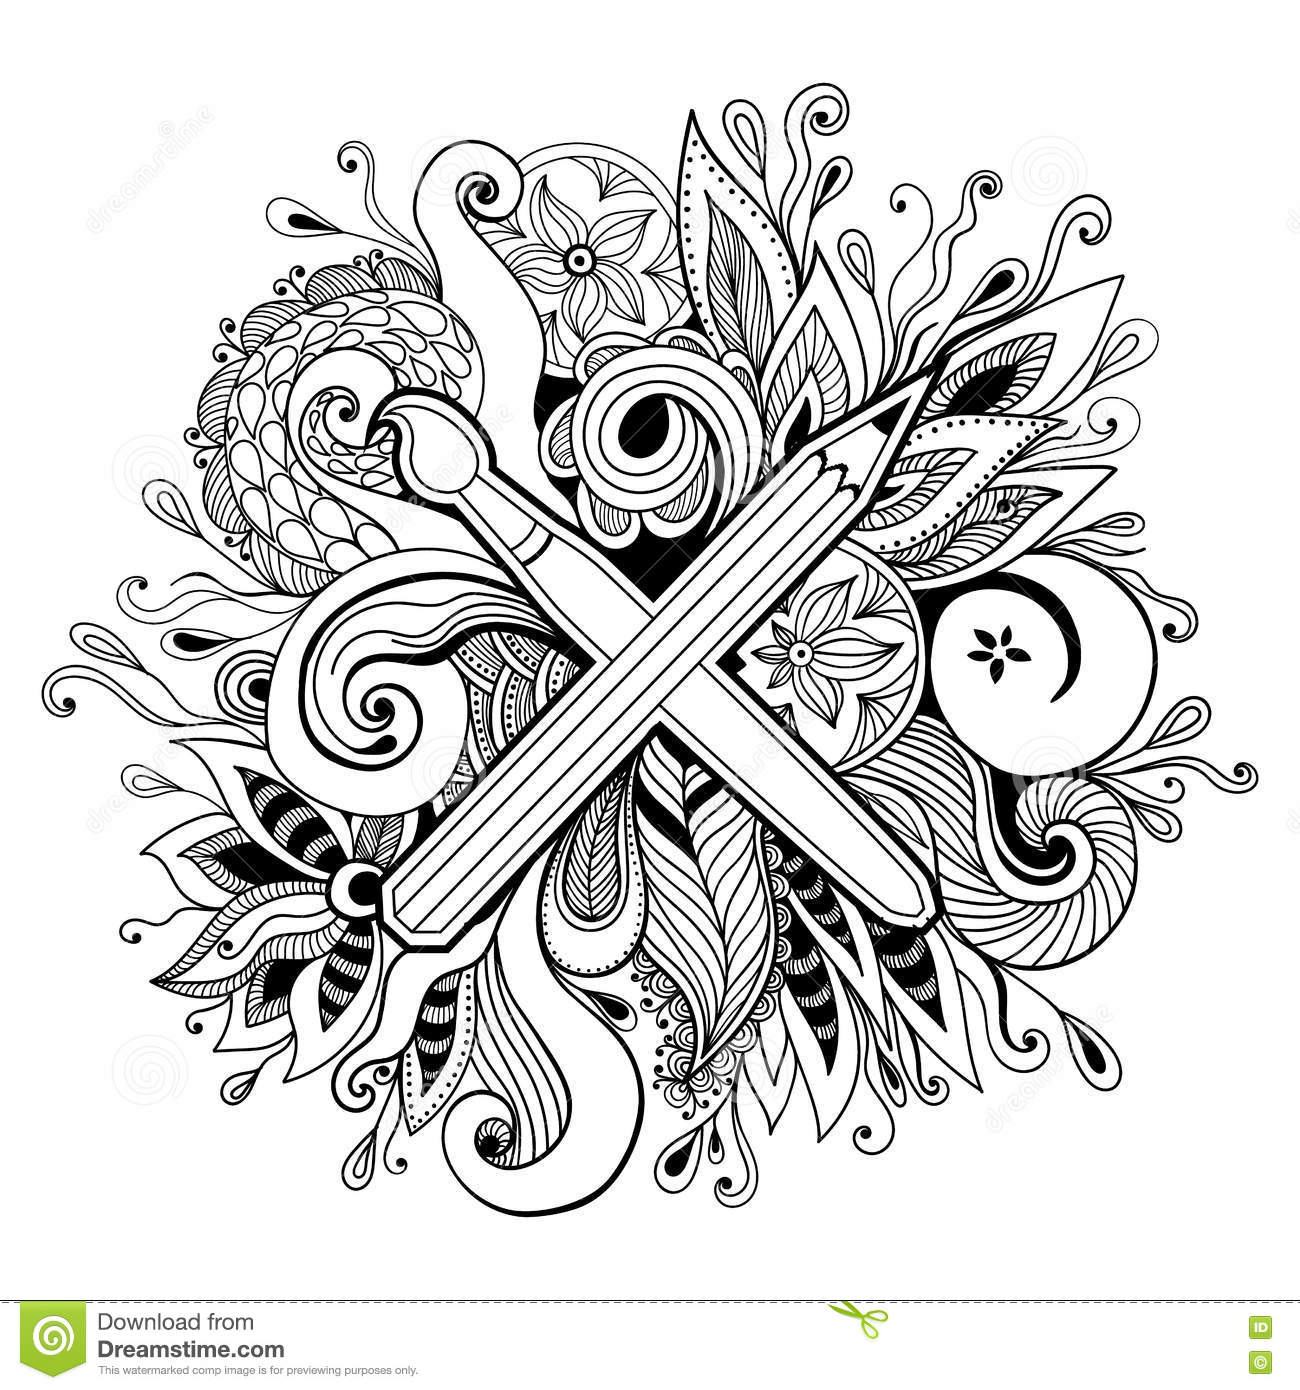 Creativity clipart black and white